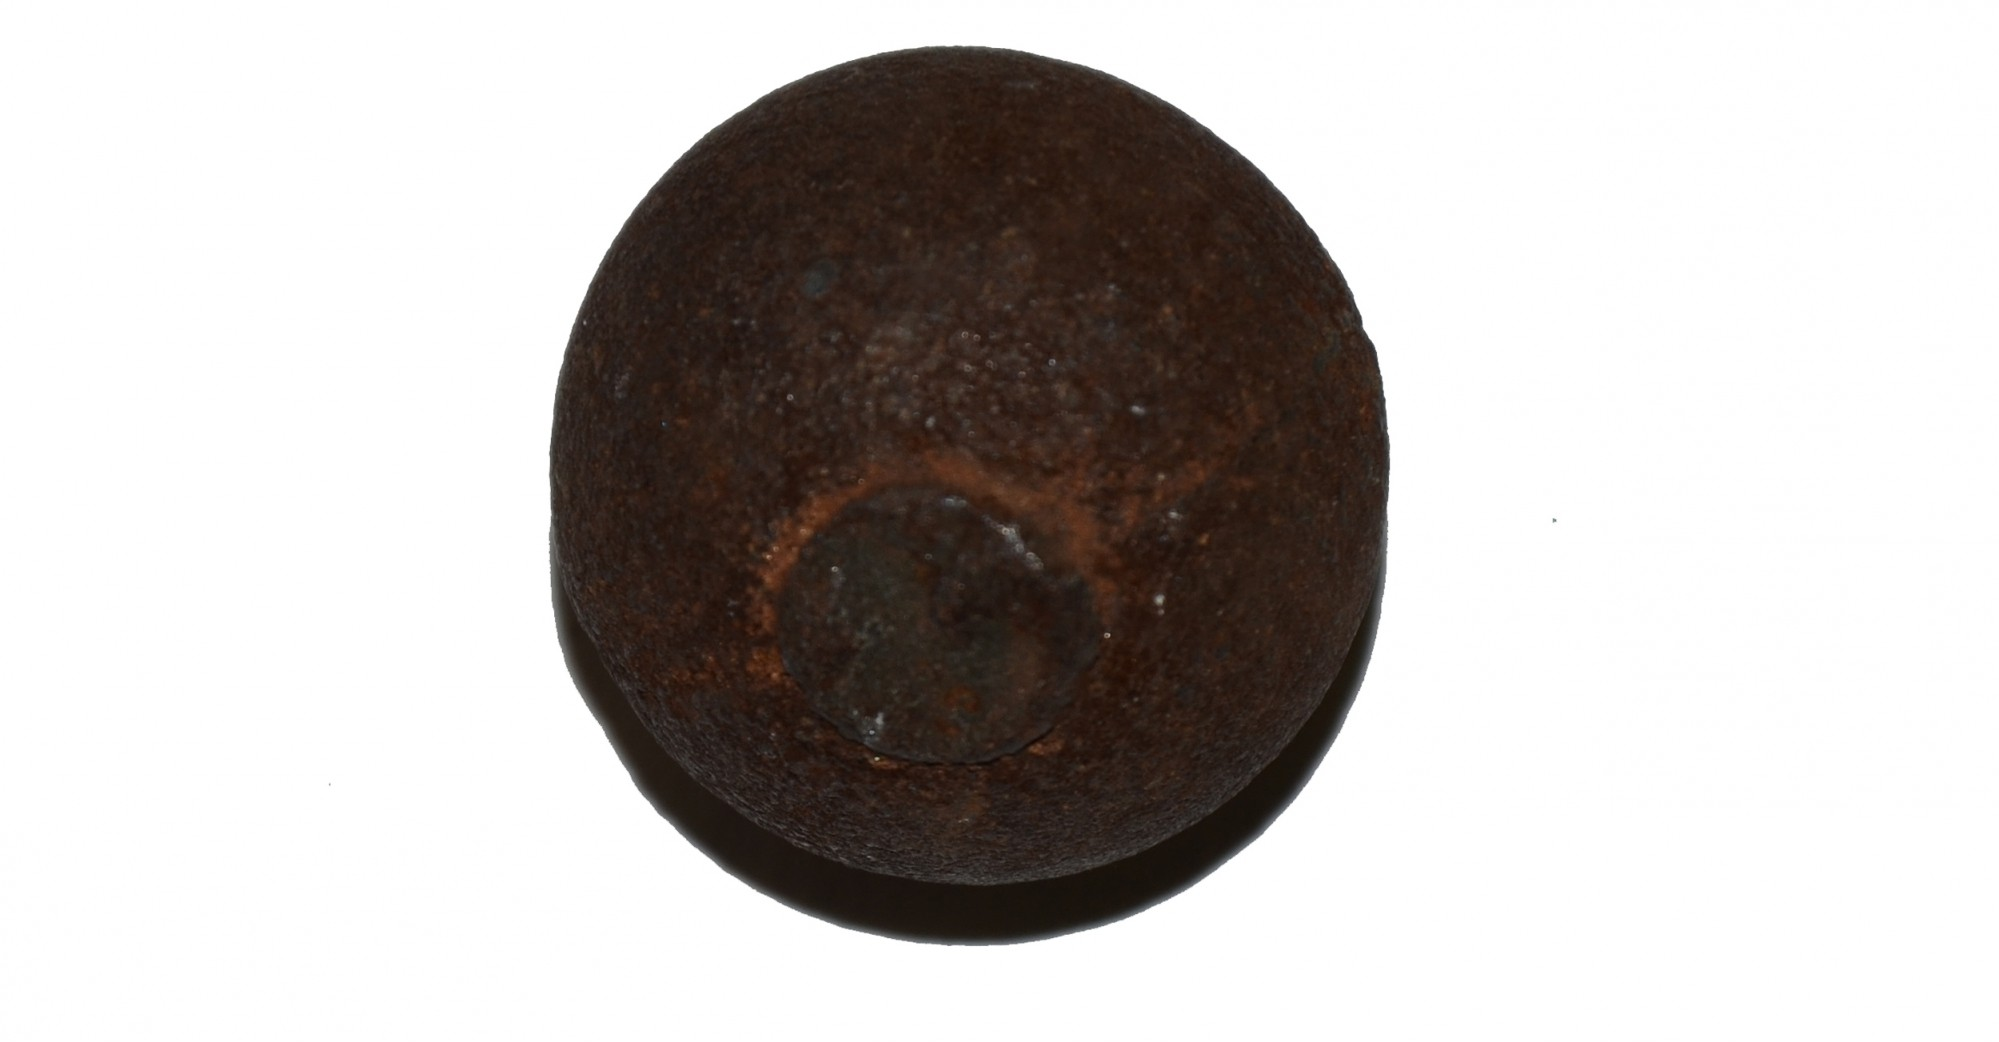 "US/CS 3"" CANISTER BALL RECOVERED ON OAK HILL, GETTYSBURG – SHIELDS MUSEUM COLLECTION"